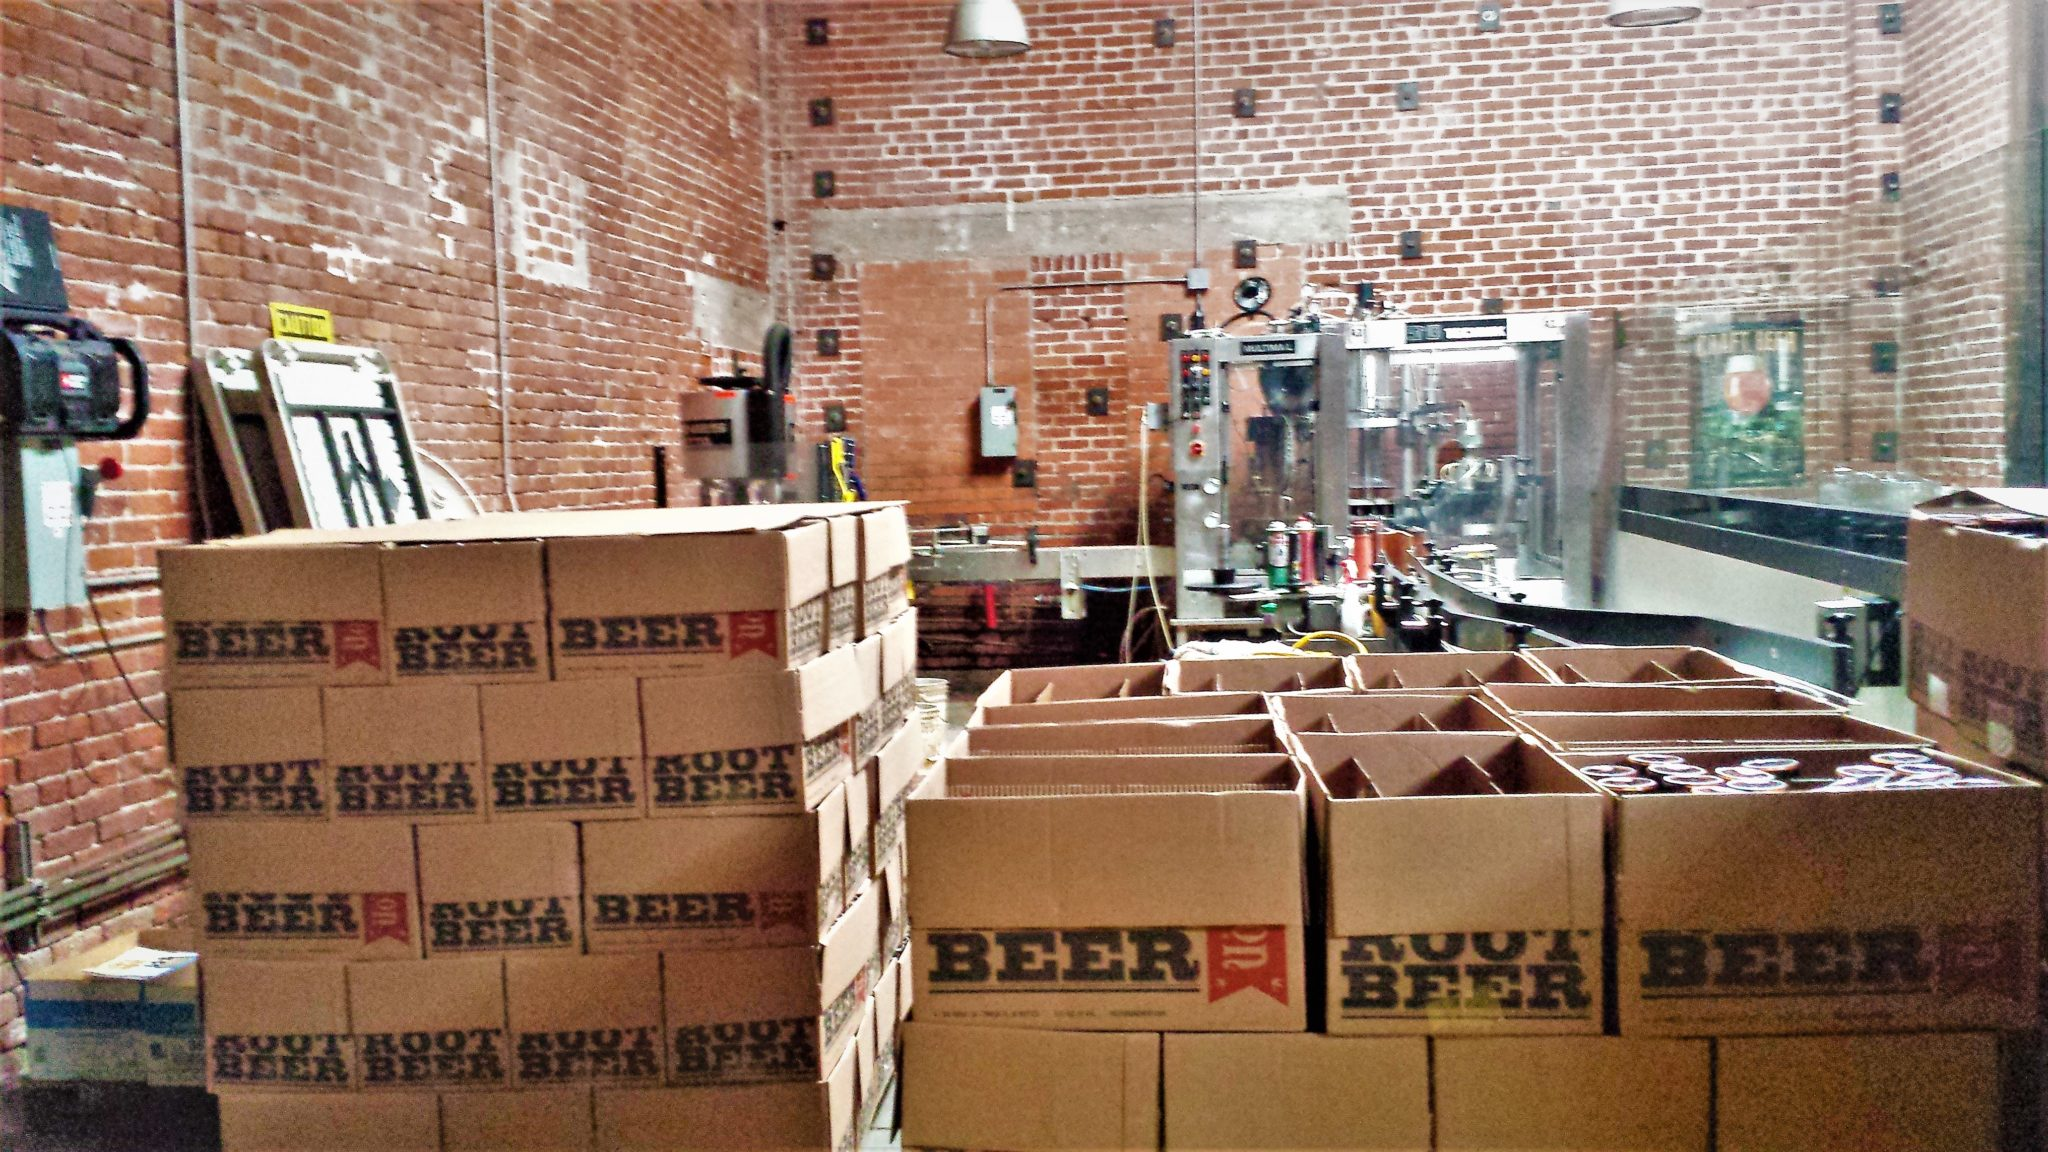 Beer crates, Mission Brewery Tour, things to do in San Diego, California